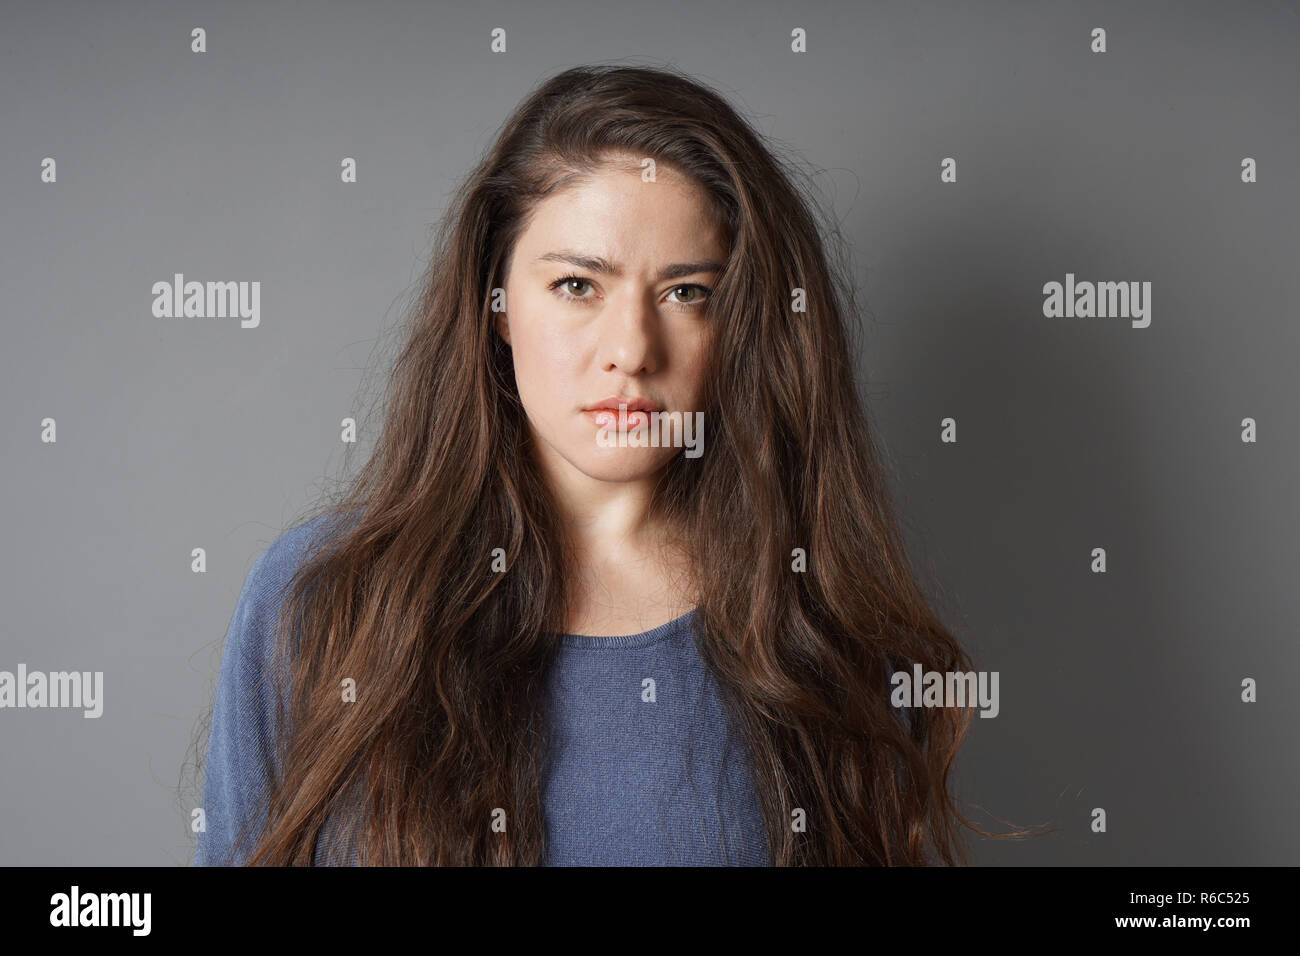 young woman with a serious look on her face - gray background with copy space - Stock Image